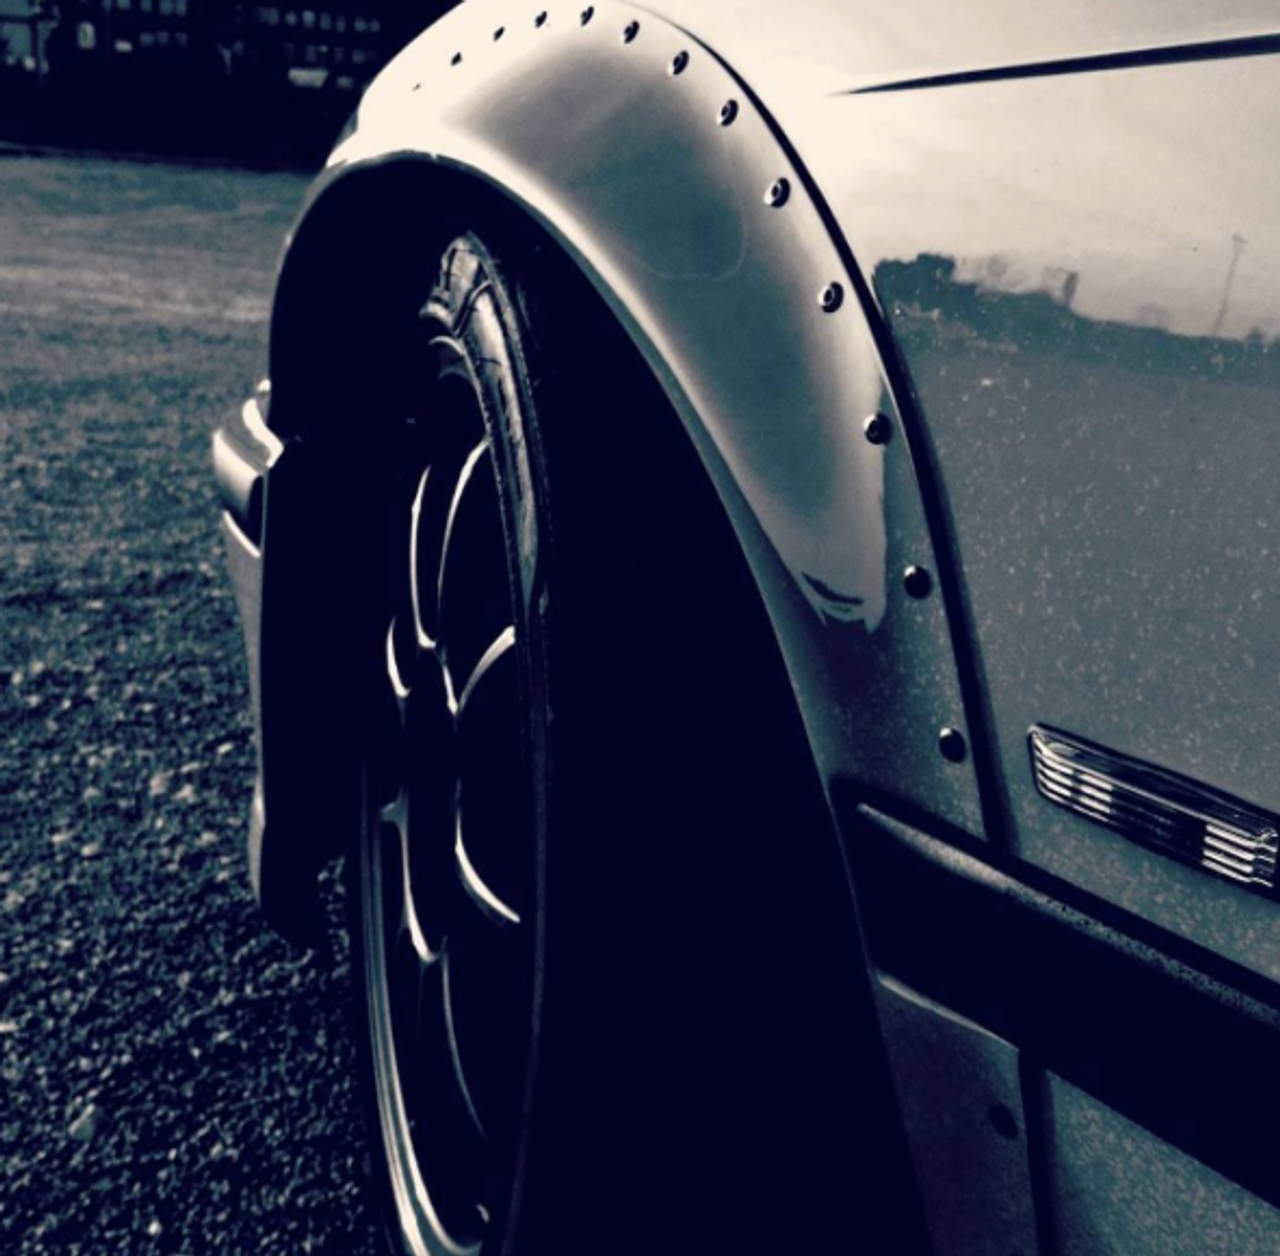 Instagram: Cool shot of our Fender Flares on @kinezool's E36!